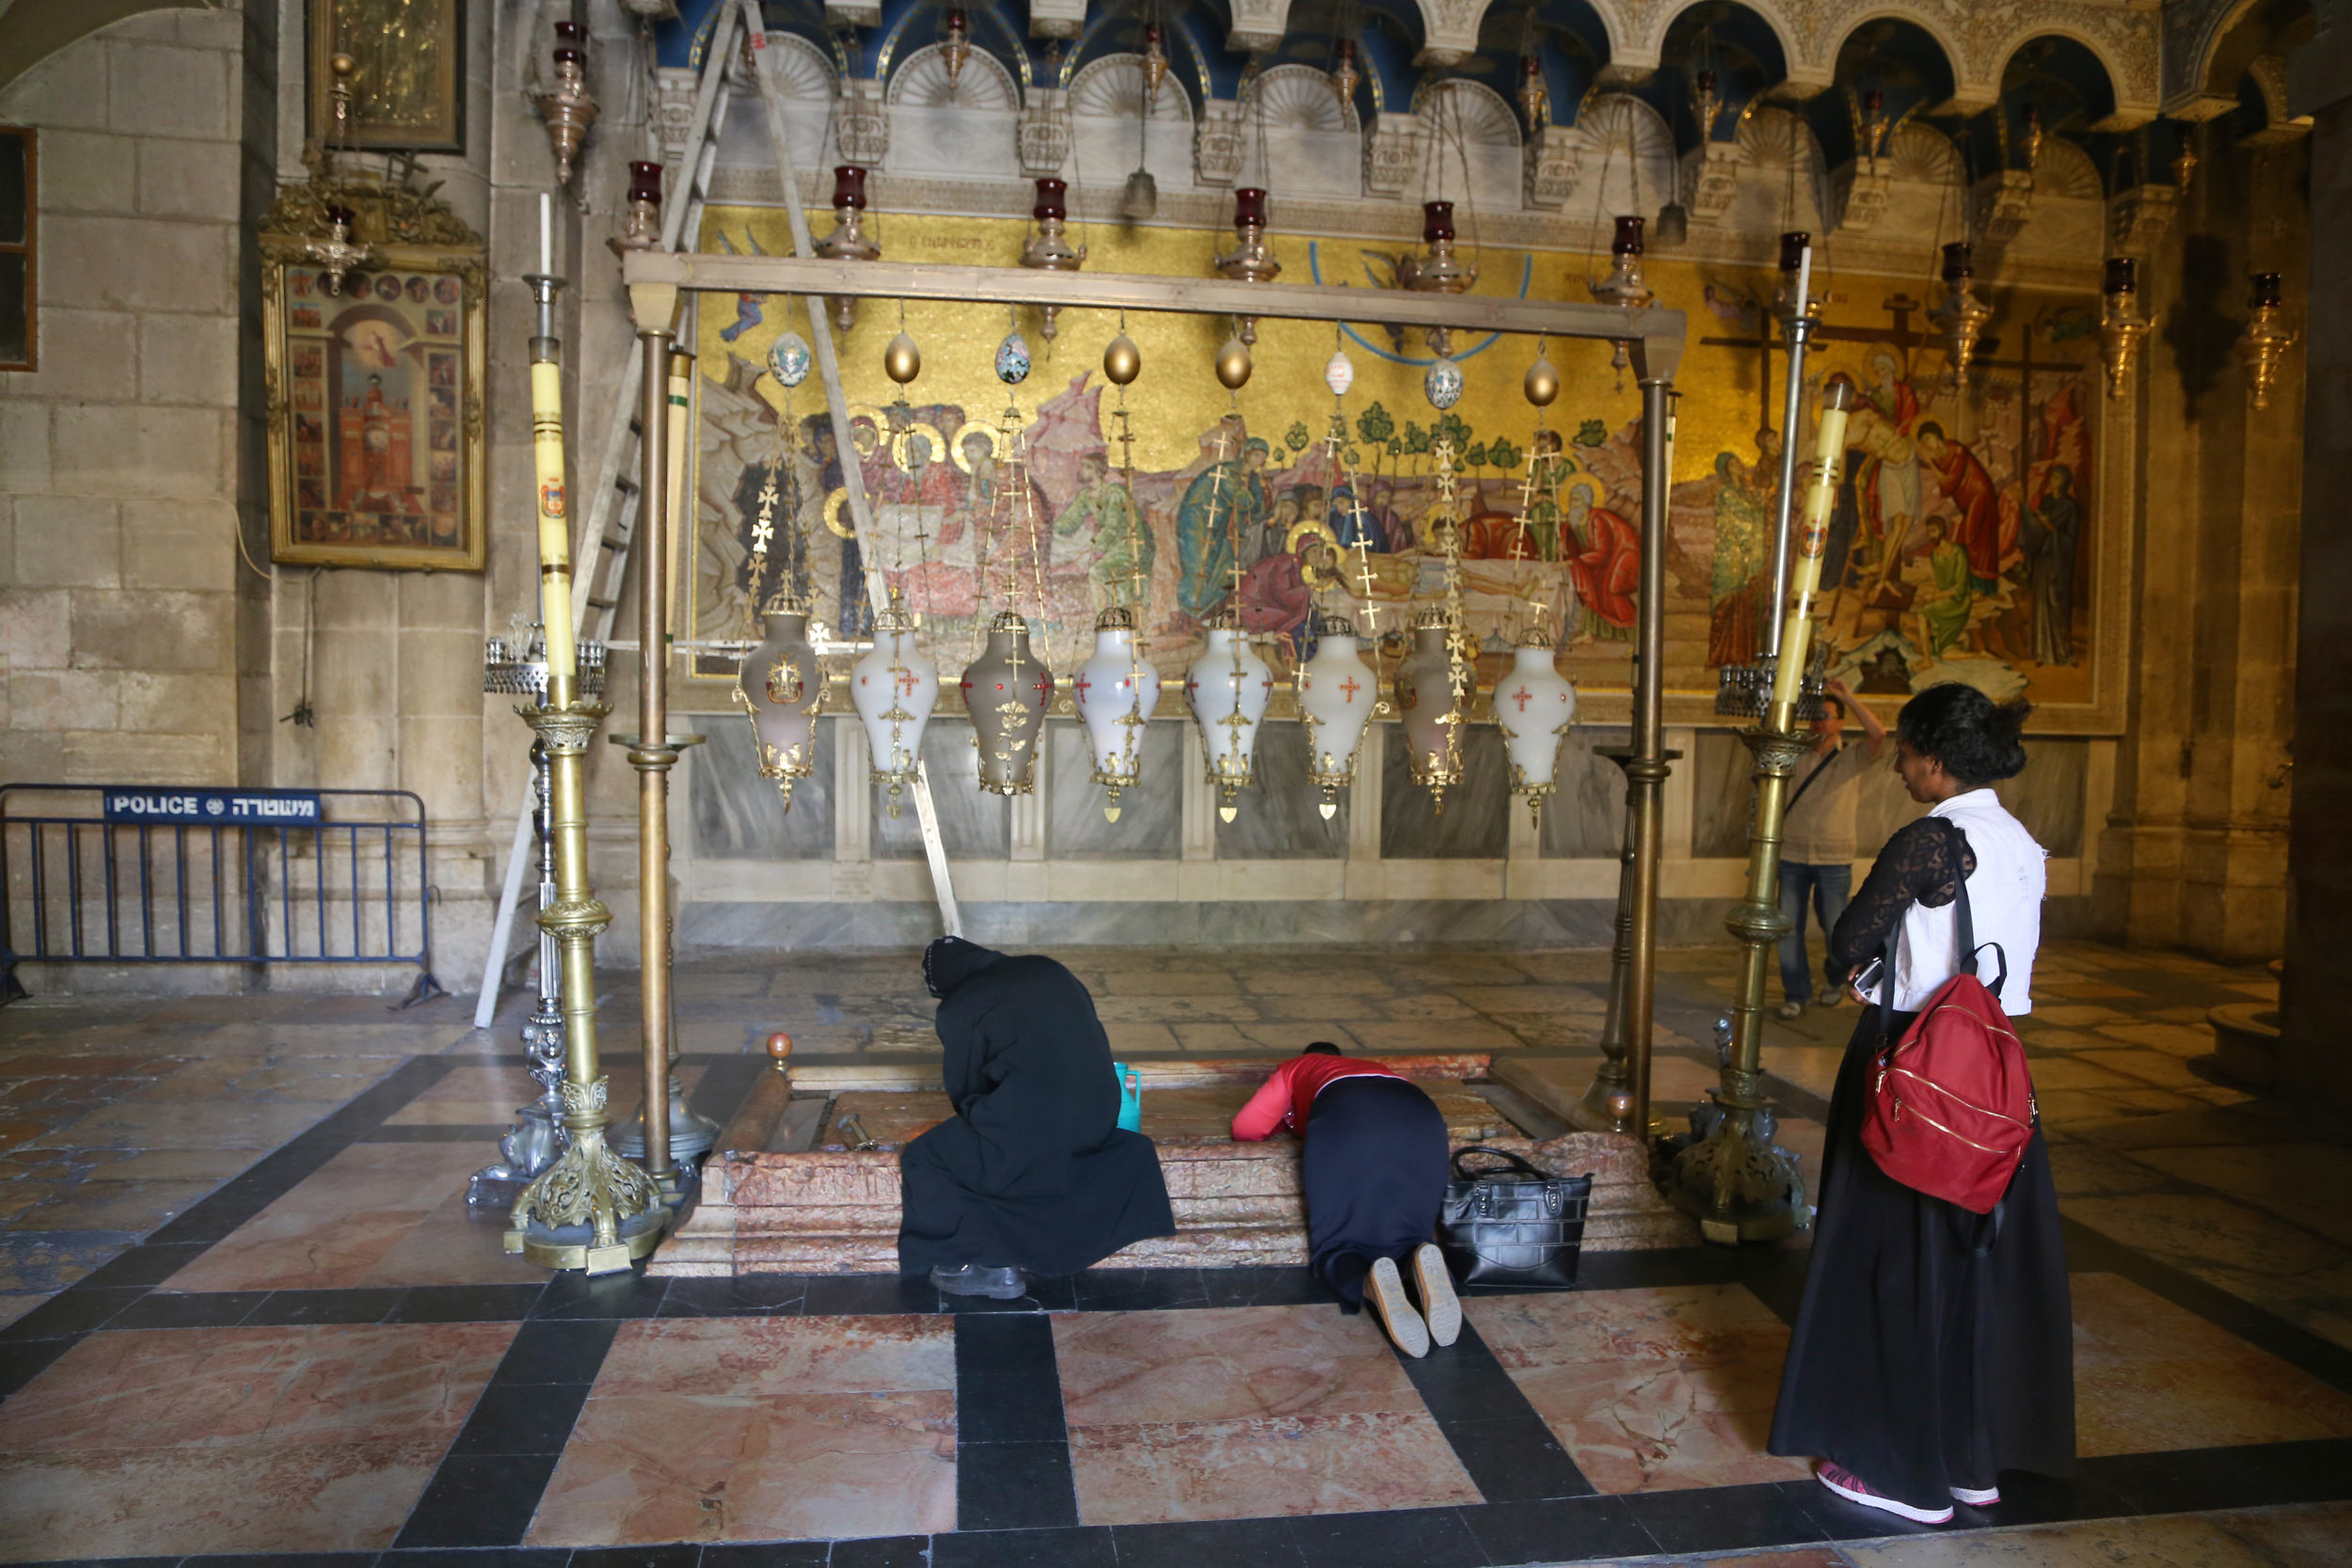 Women at the Stone of Anointing, which tradition believes to be the spot where Jesus' body was prepared for burial.